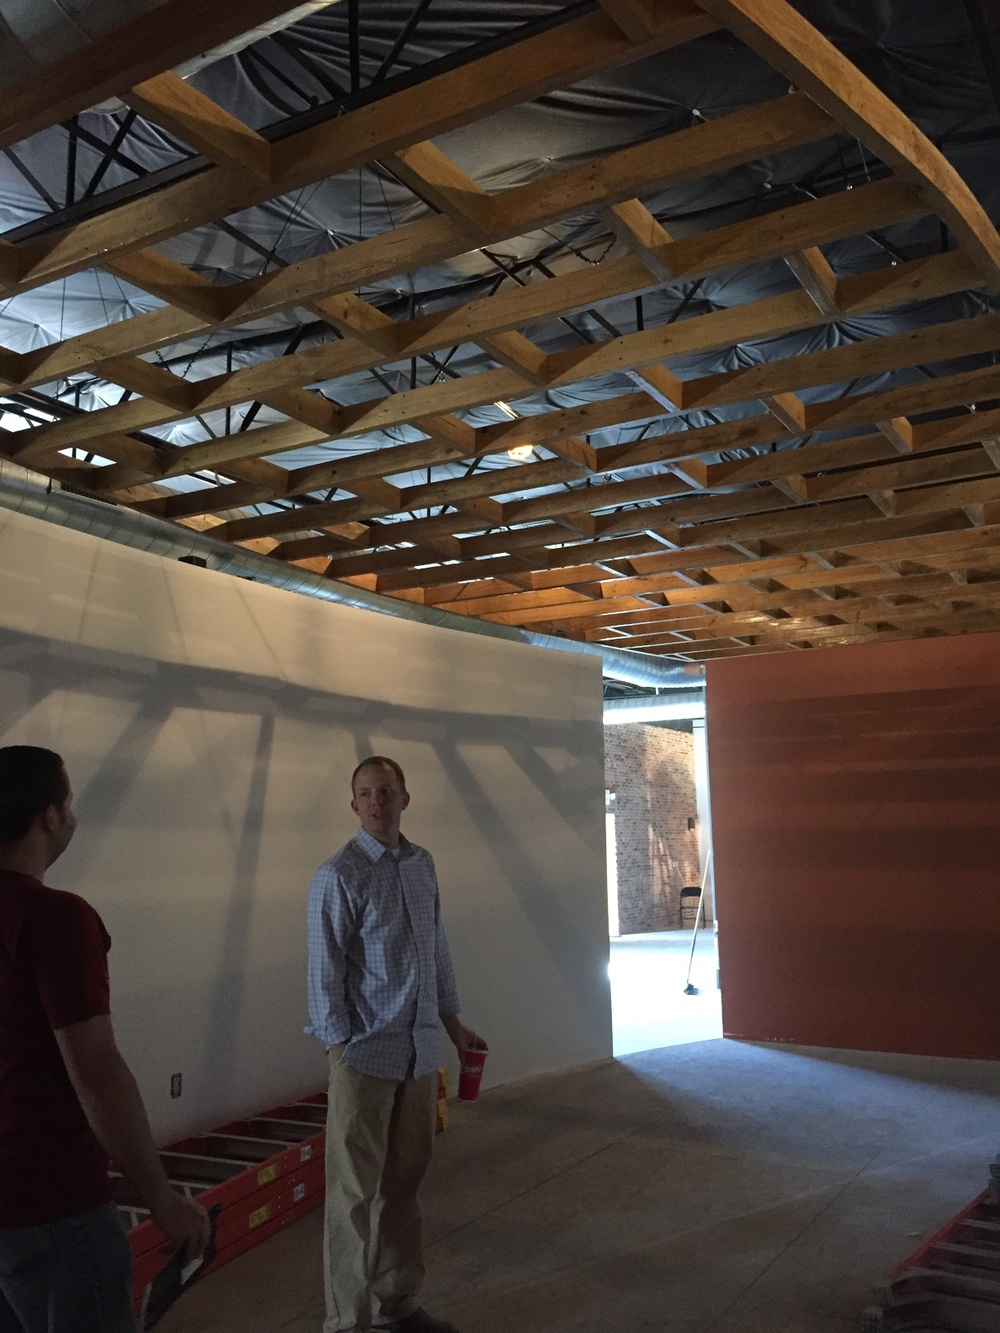 Check out this wooden structure in our big collab space.